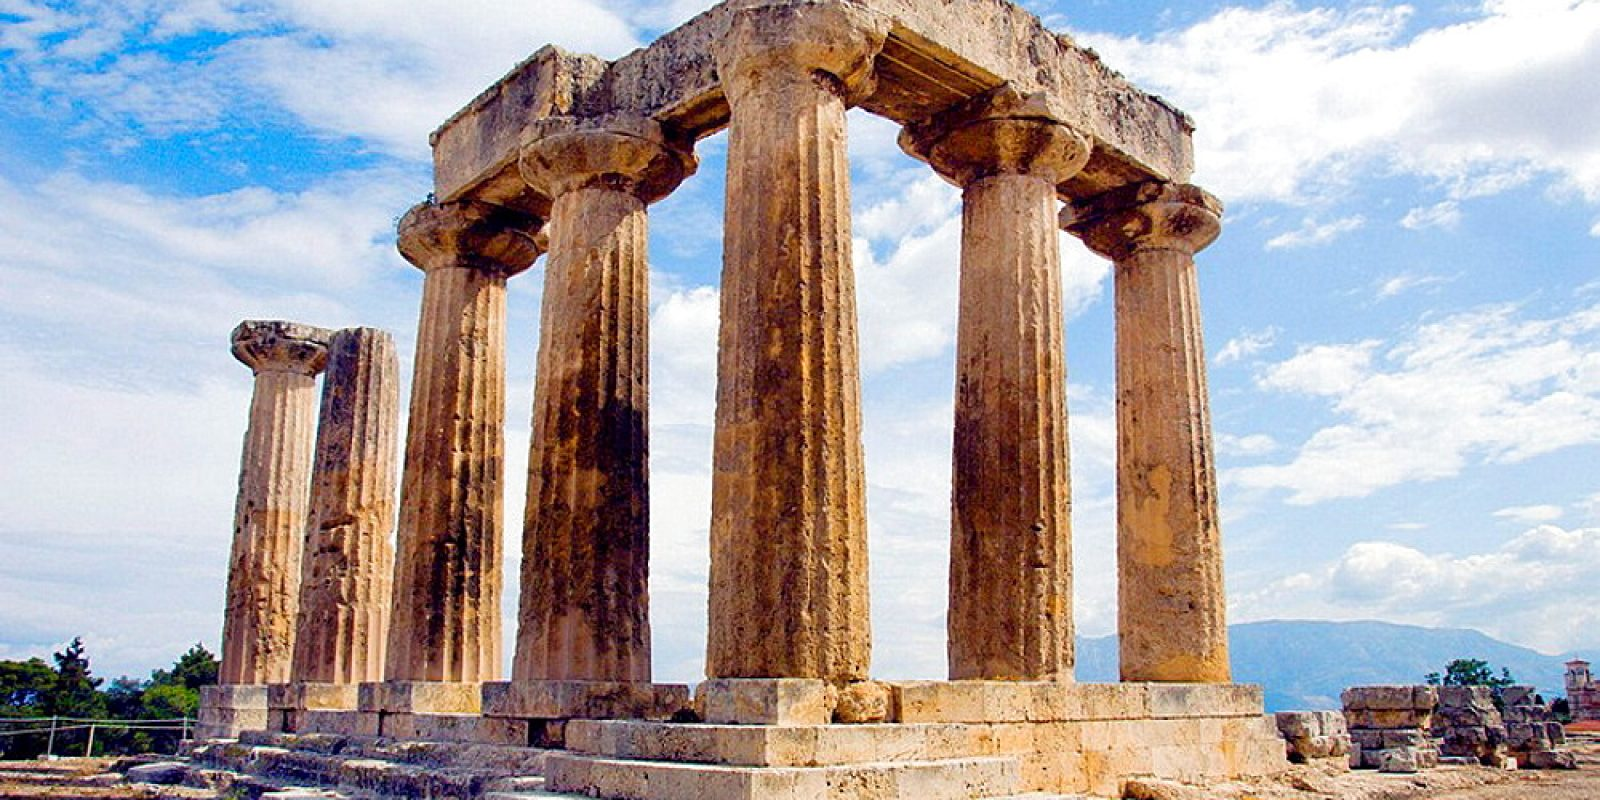 The ruins of the Temple of Apollo in the ancient city of Corinth, Greece